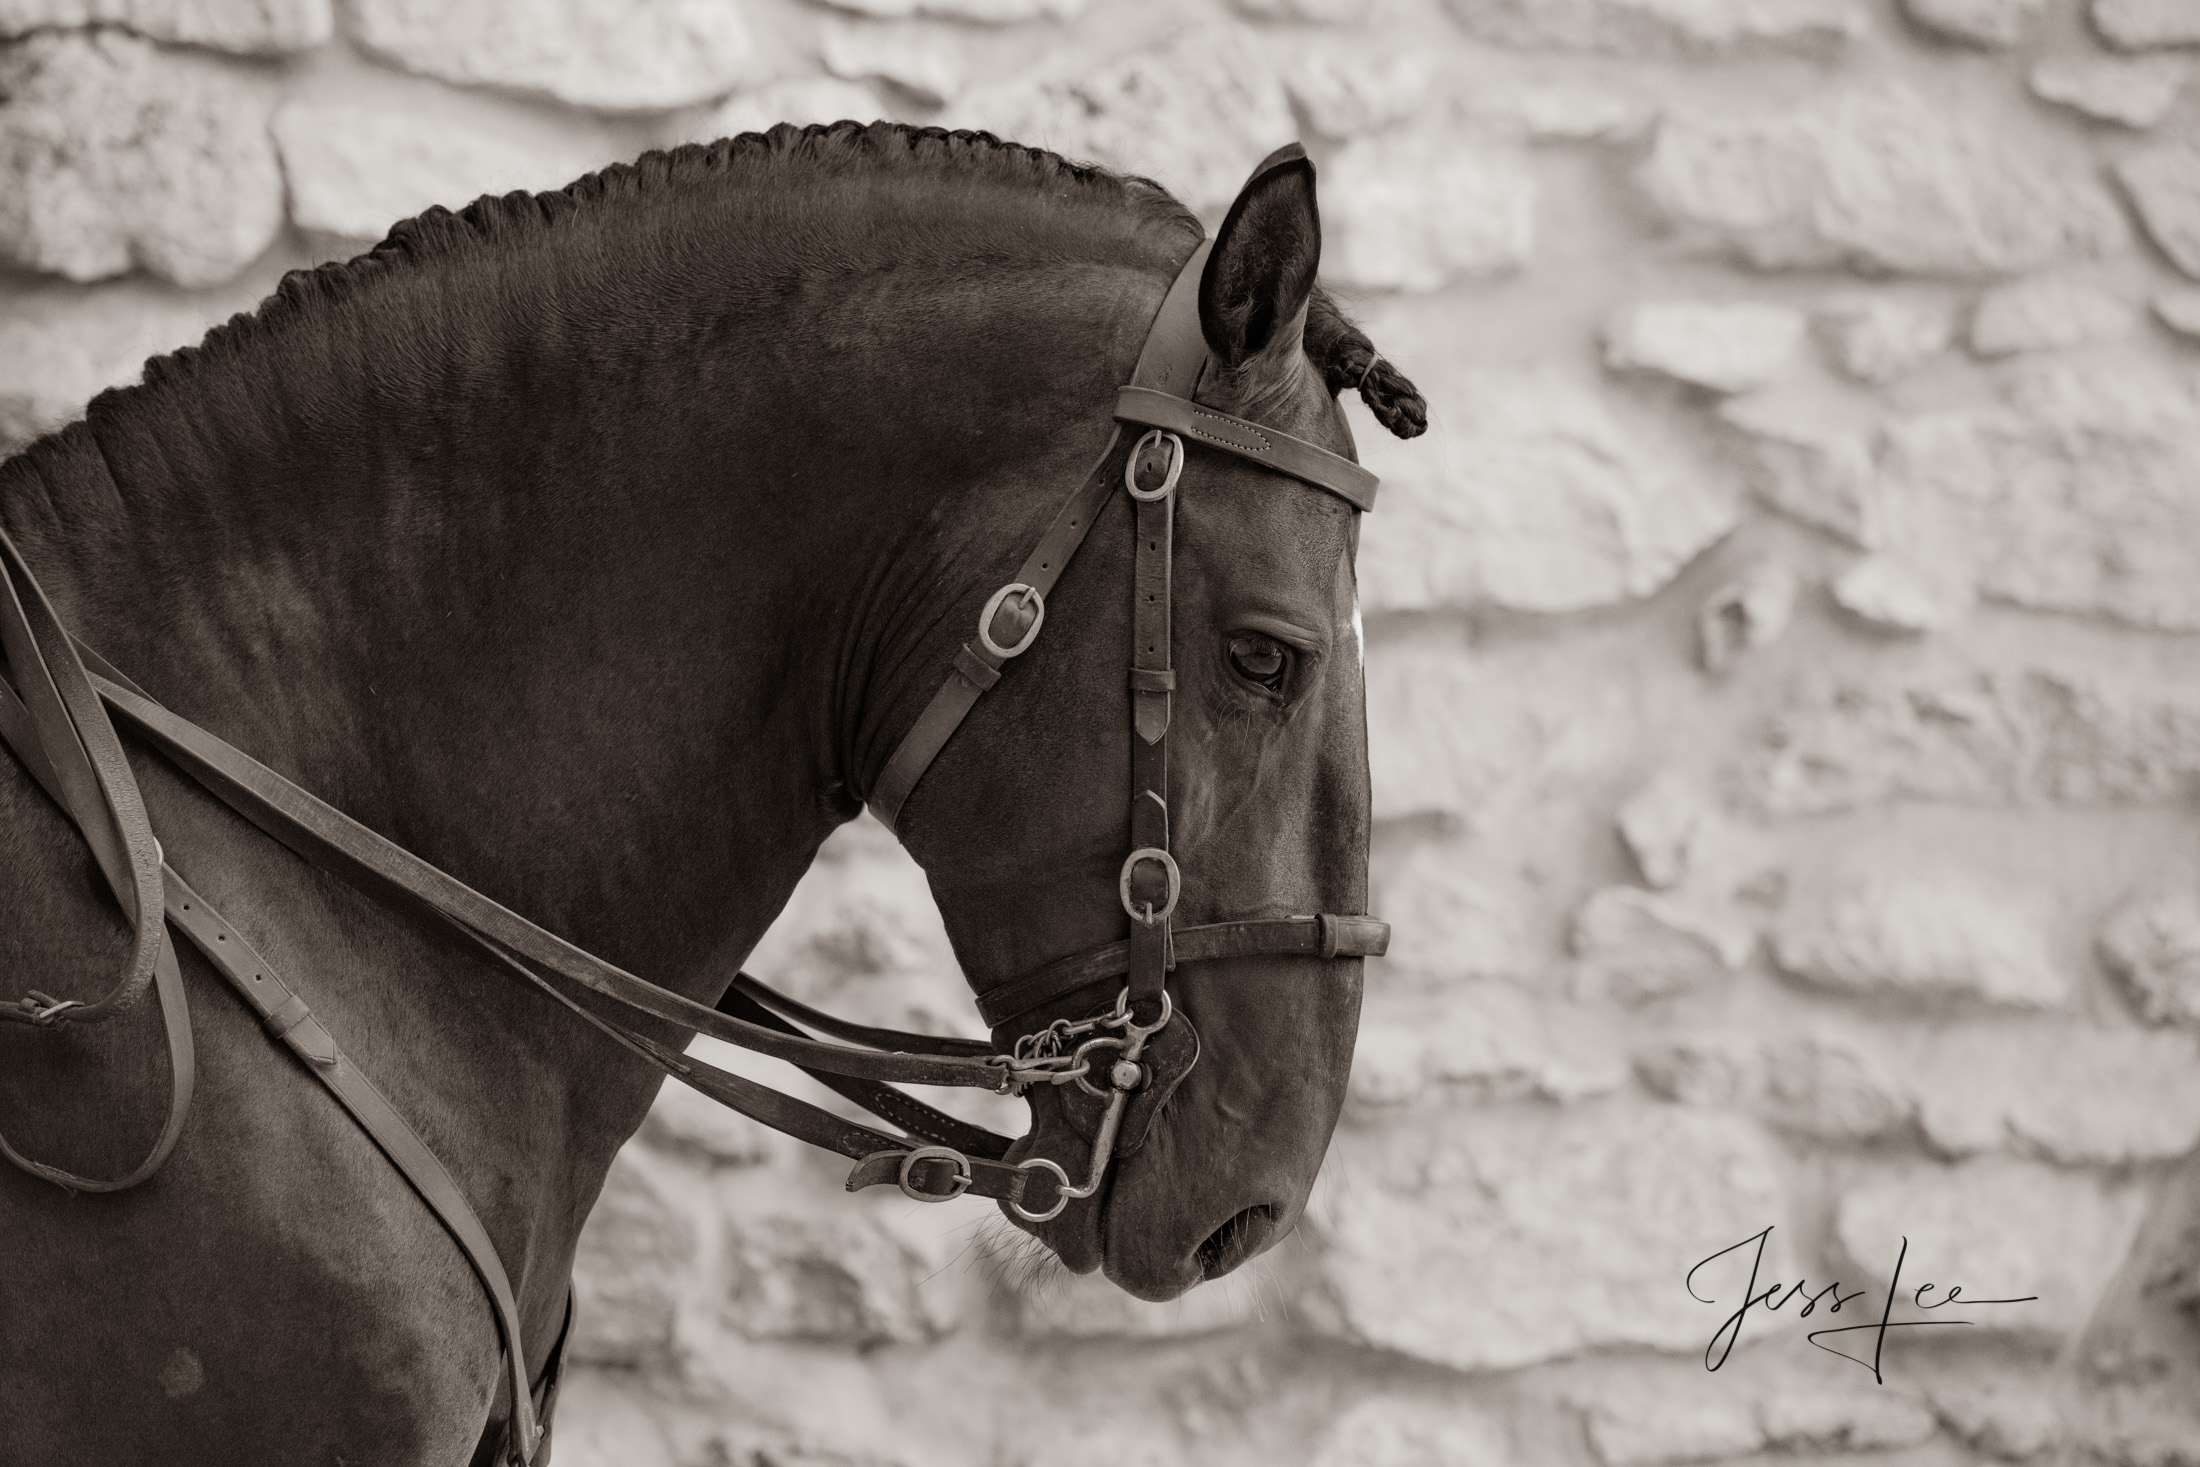 Camargue # 9-1 Fine Art, Limited Edition, Luxurious photographic prints of the horses of the Camargue and Provence region of...